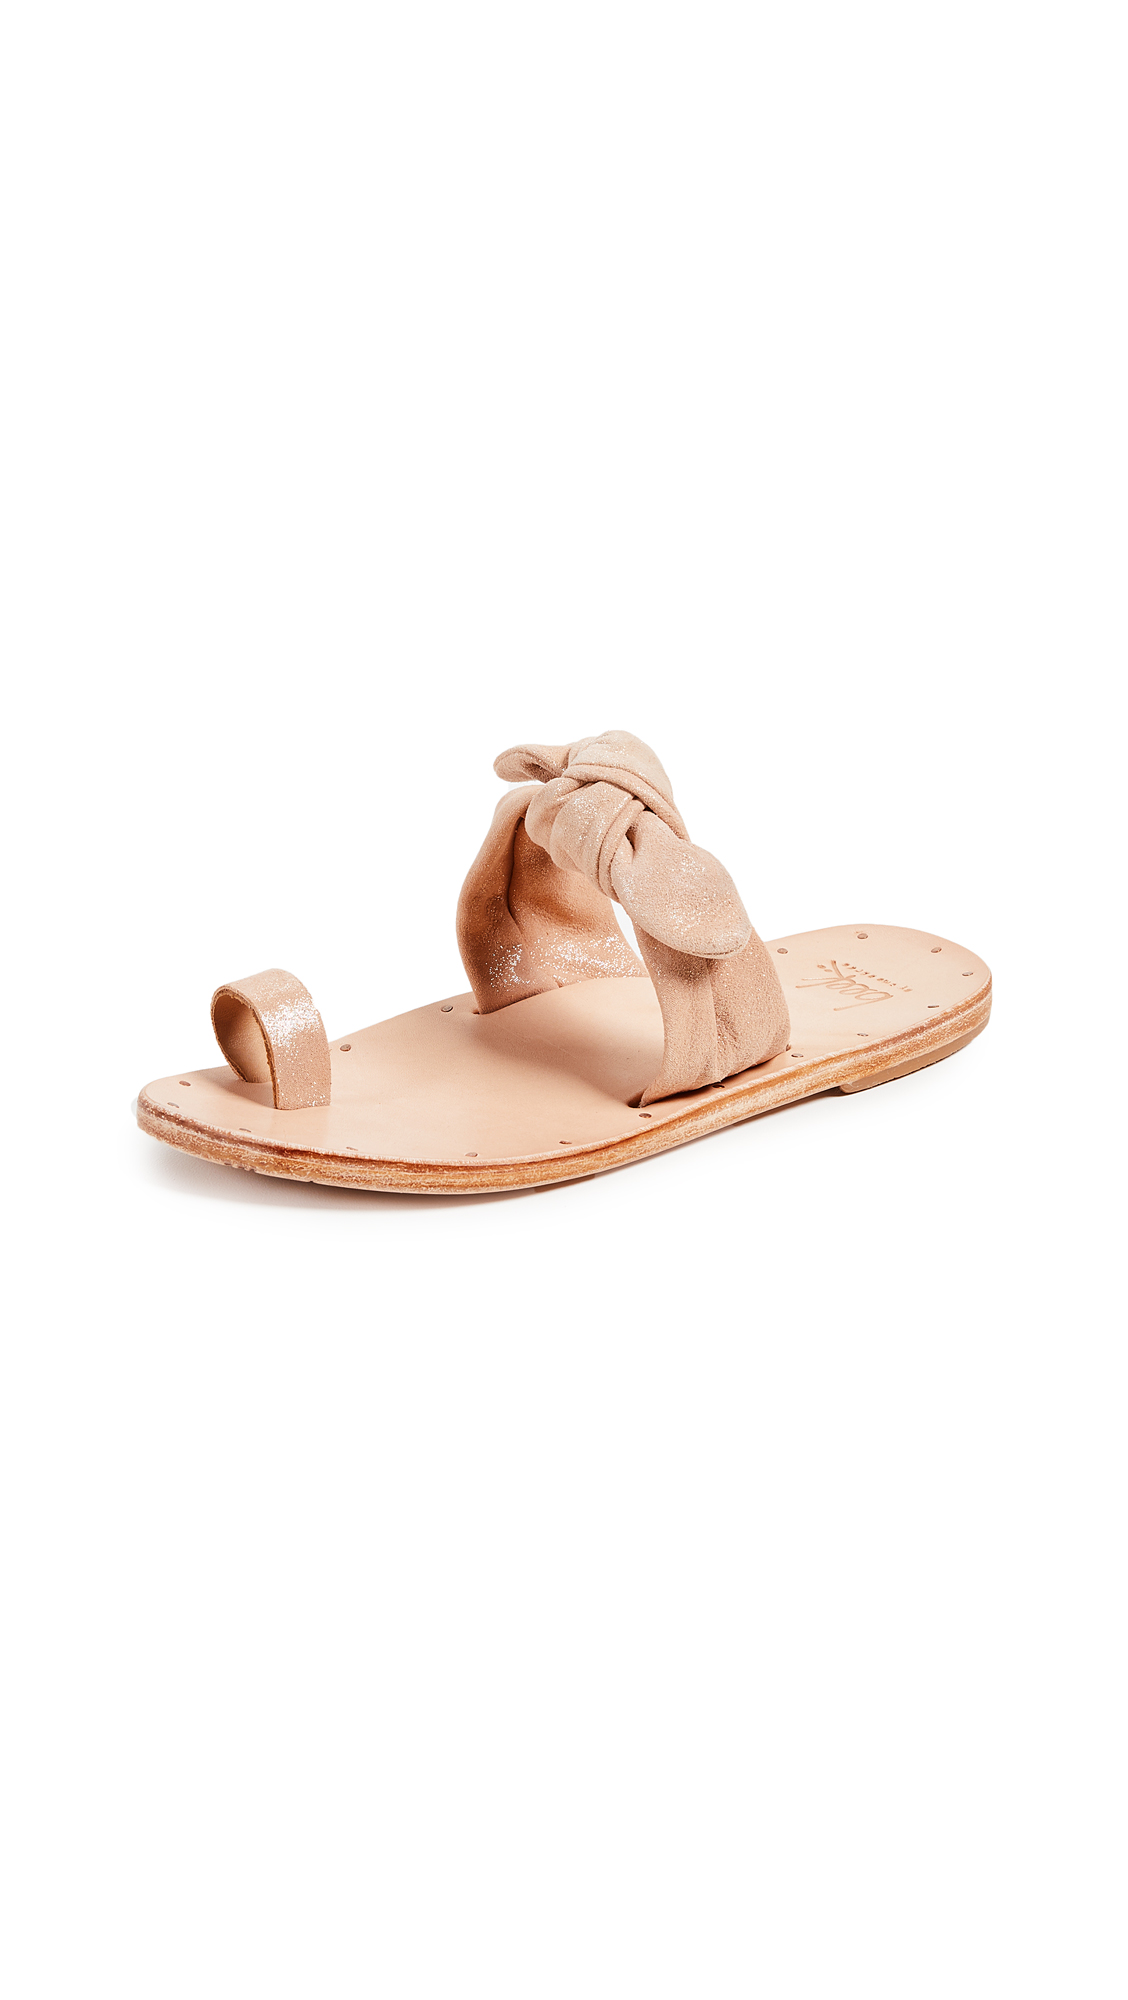 Outlet For Nice Fashionable Online BEEK Lory Sandal in Metallic Apricot & Tan Cheap Footaction Pictures Sale Online pUHofI7JHp